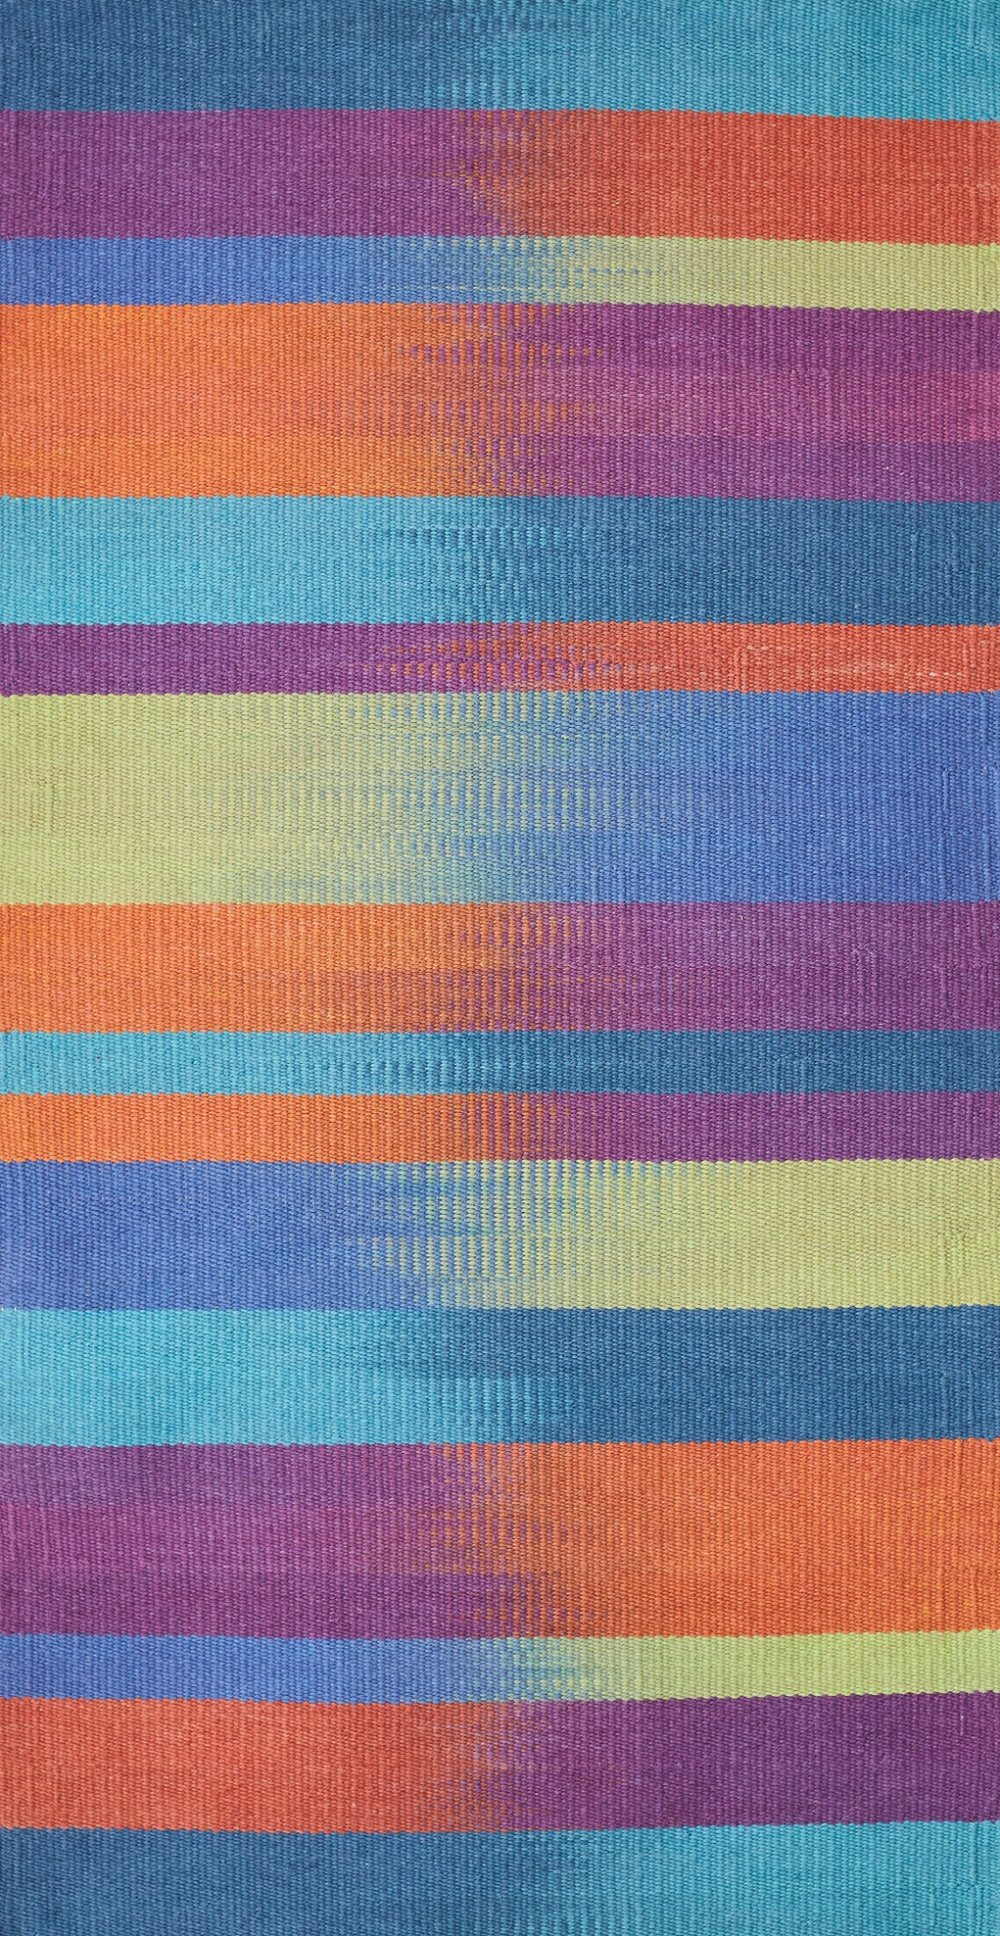 JJ0137   Recycled cotton & linen.  Hand dyed painted weft. 88 x 162 cm.